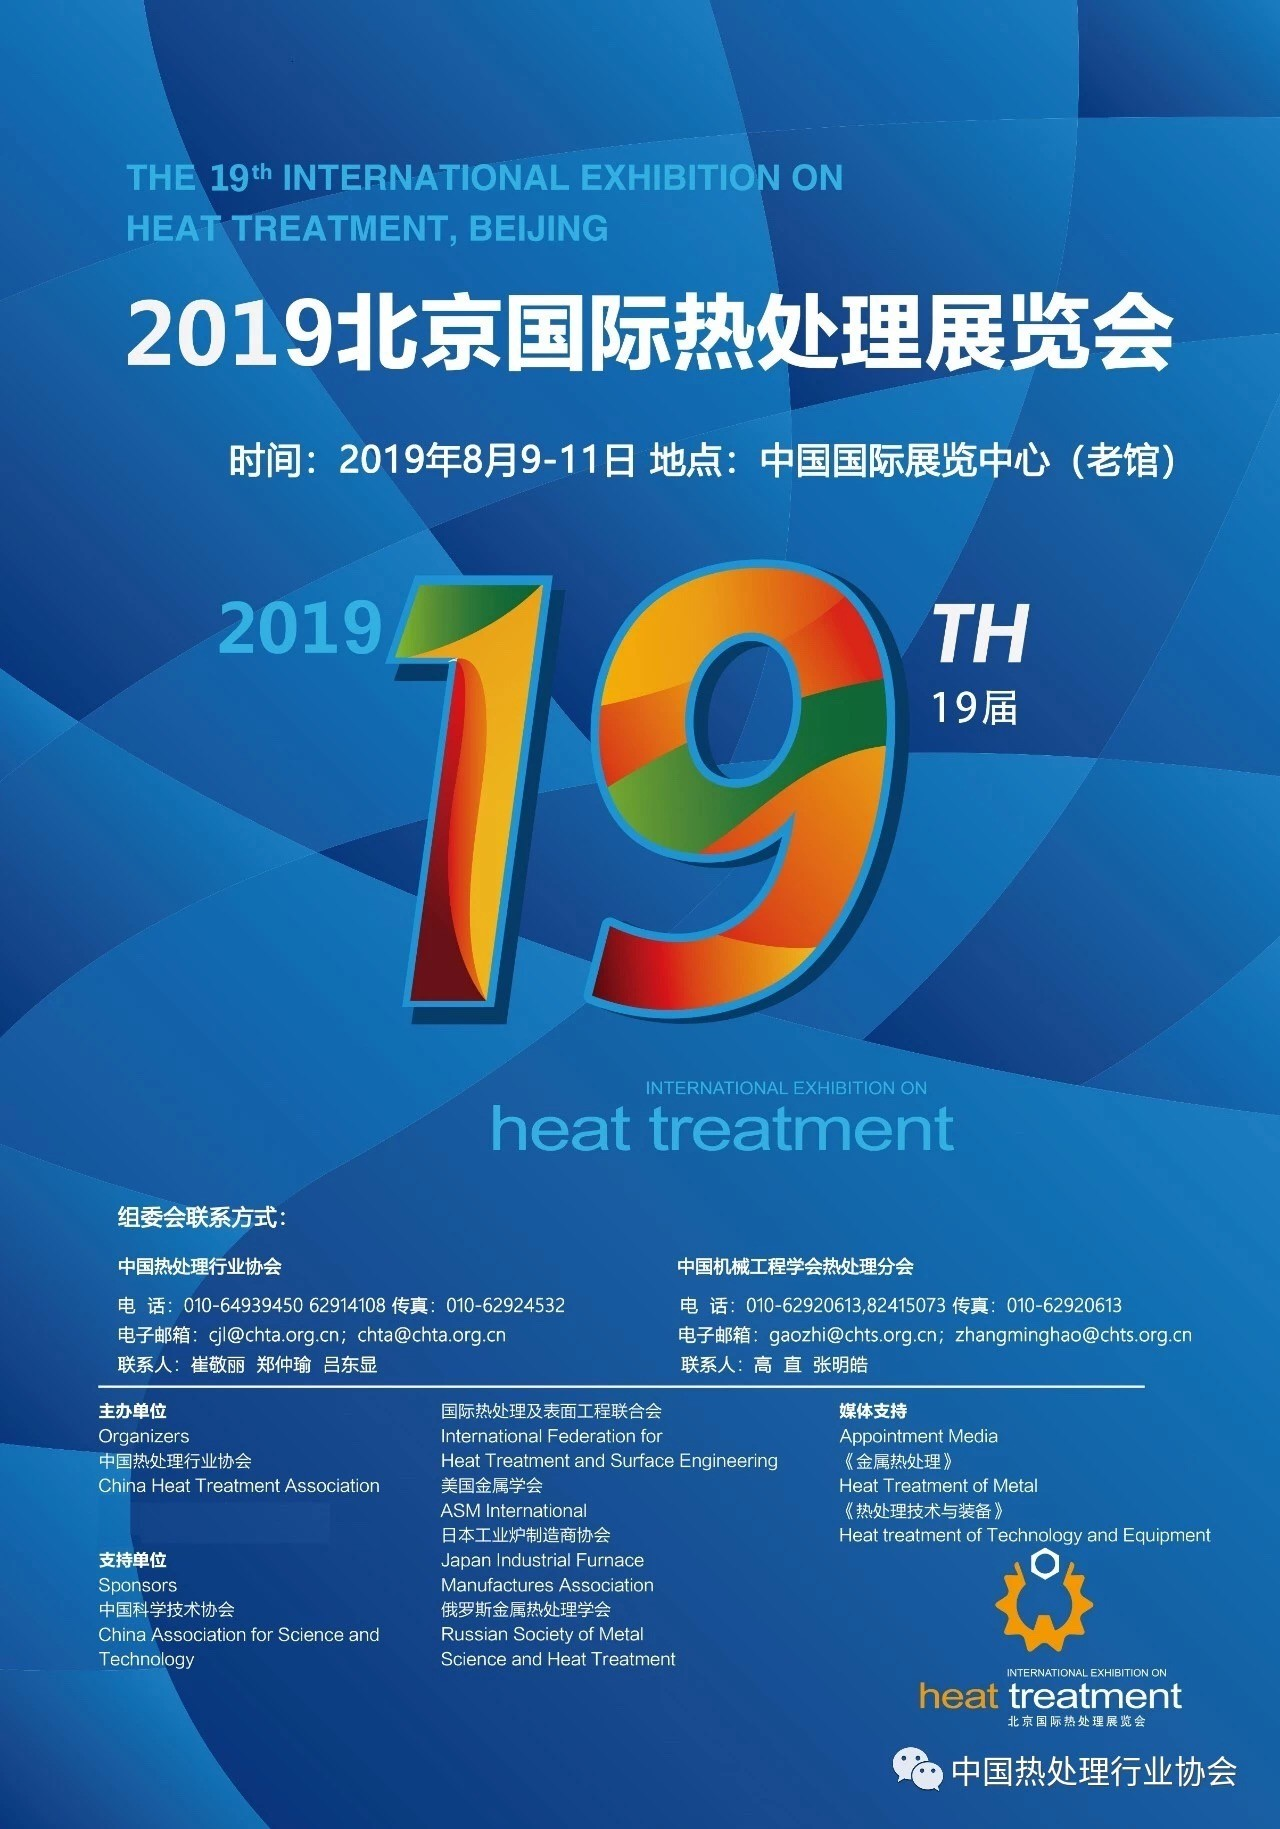 The 19th international exhibition on heat treatment, Beijing